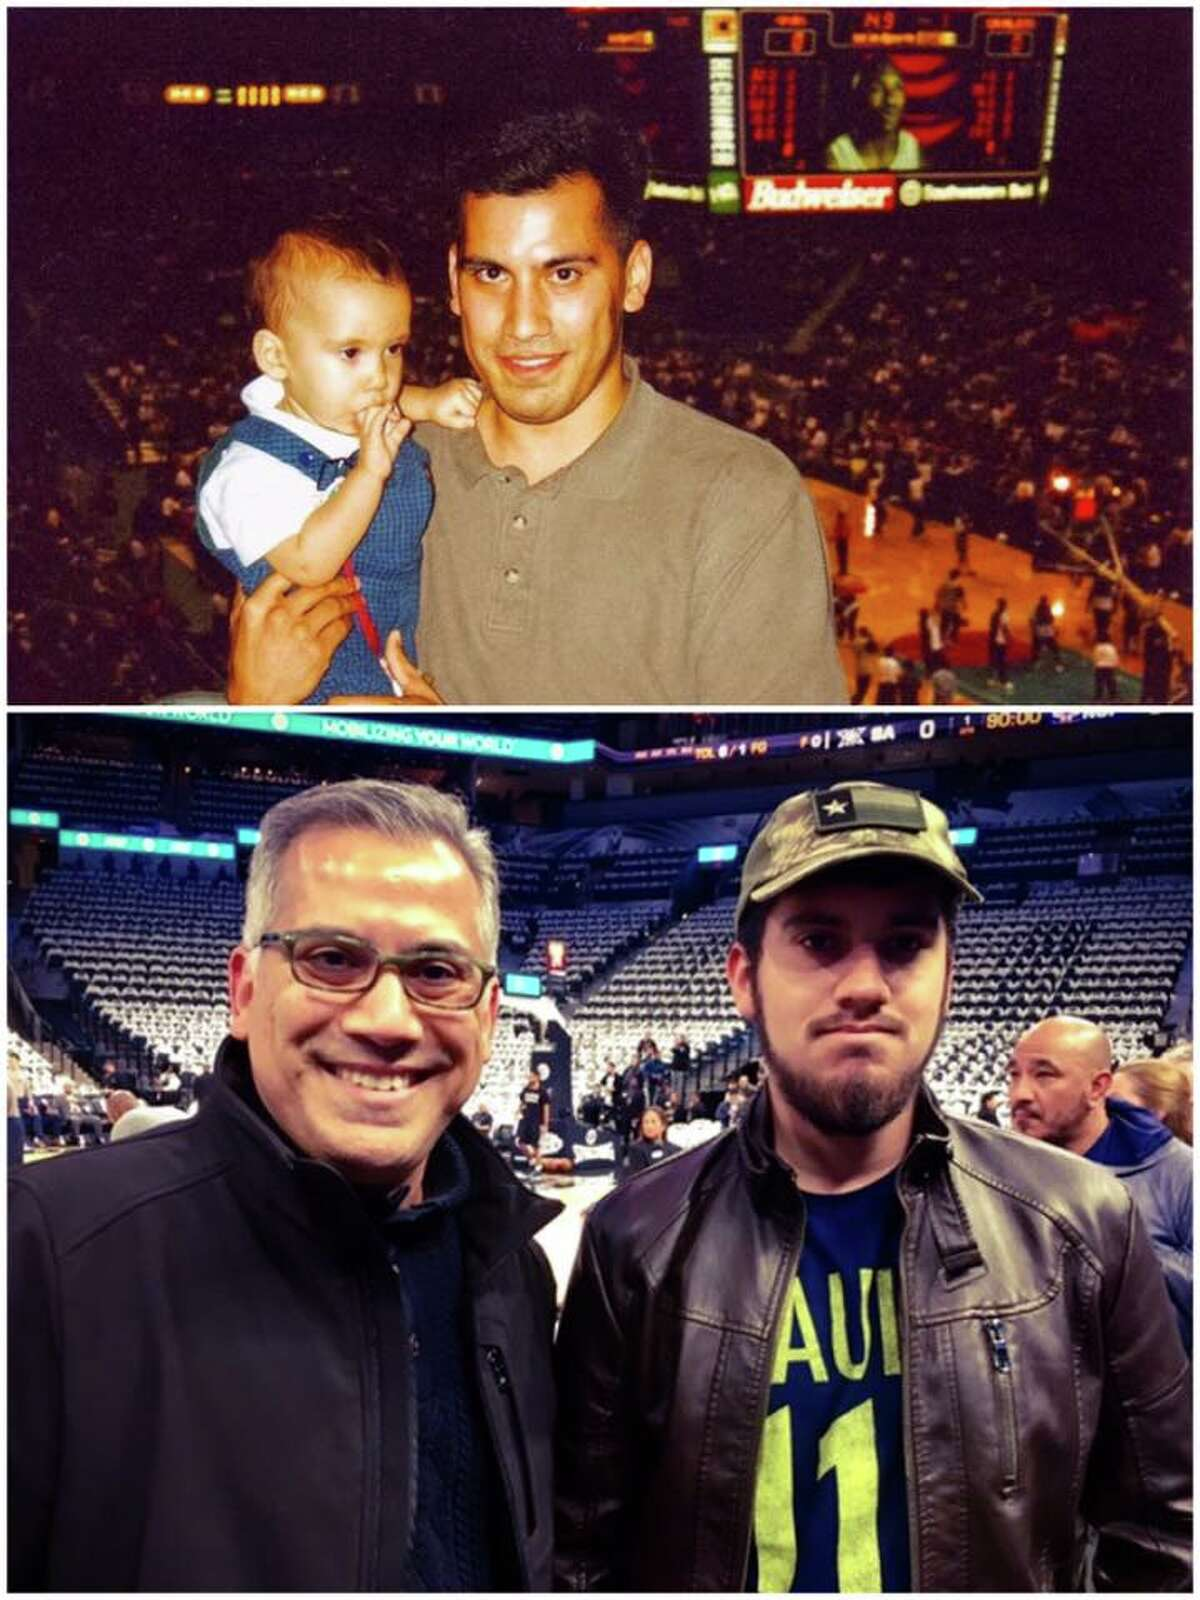 David Martinez and his son Quincy attended Tim Duncan's first home game with the Spurs 19 years ago at the Alamodome. On Sunday he and his son were on hand at the AT&T Center to watch Duncan's jersey go to the rafters during a special retirement ceremony.